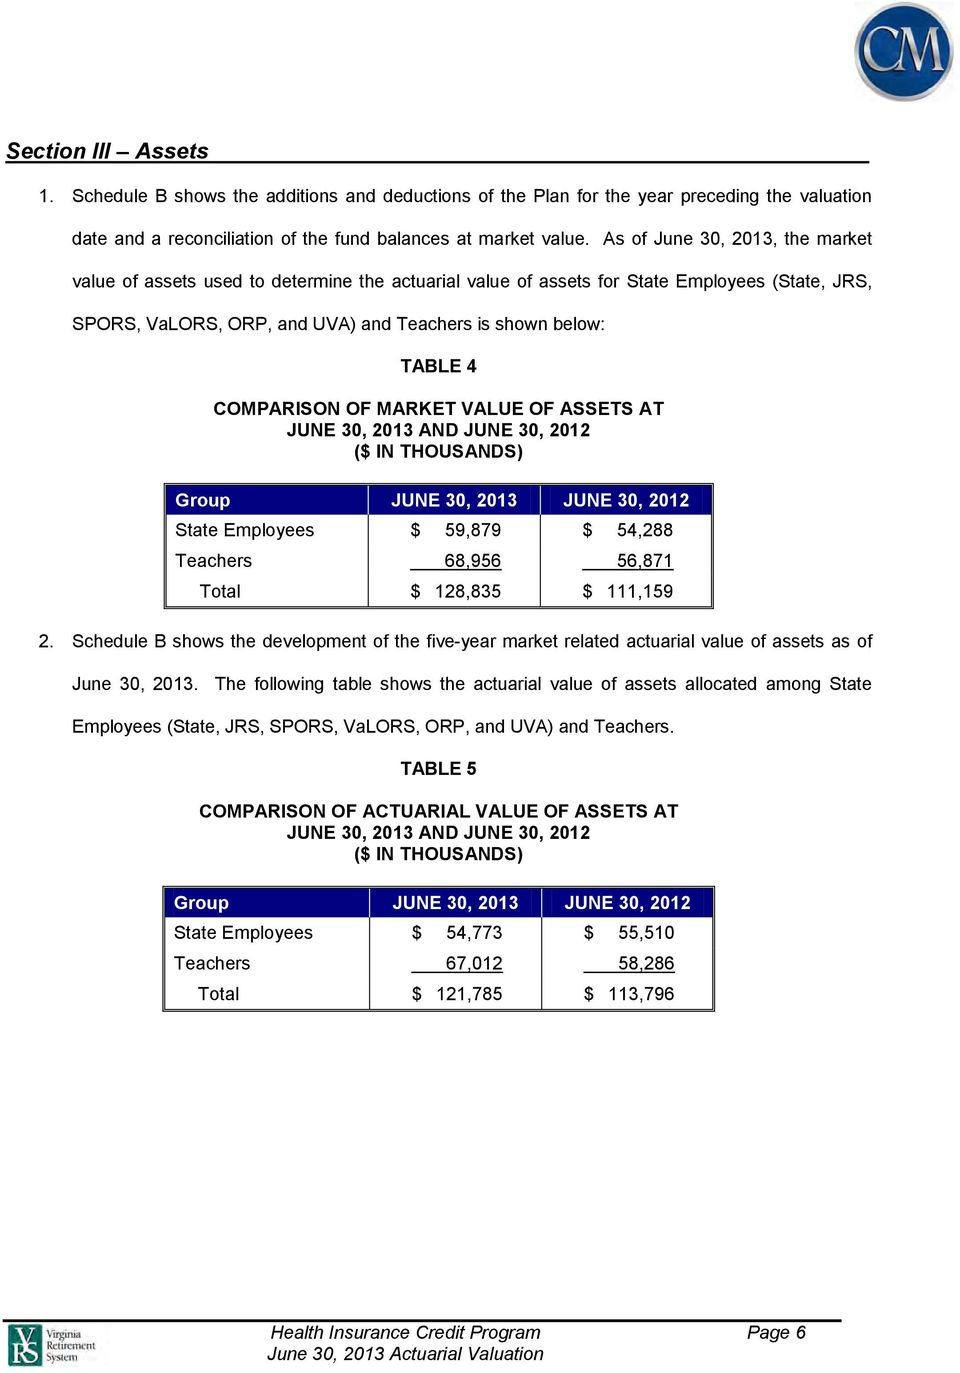 COMPARISON OF MARKET VALUE OF ASSETS AT JUNE 30, 2013 AND JUNE 30, 2012 ($ IN THOUSANDS) Group JUNE 30, 2013 JUNE 30, 2012 State Employees $ 59,879 $ 54,288 Teachers 68,956 56,871 Total $ 128,835 $